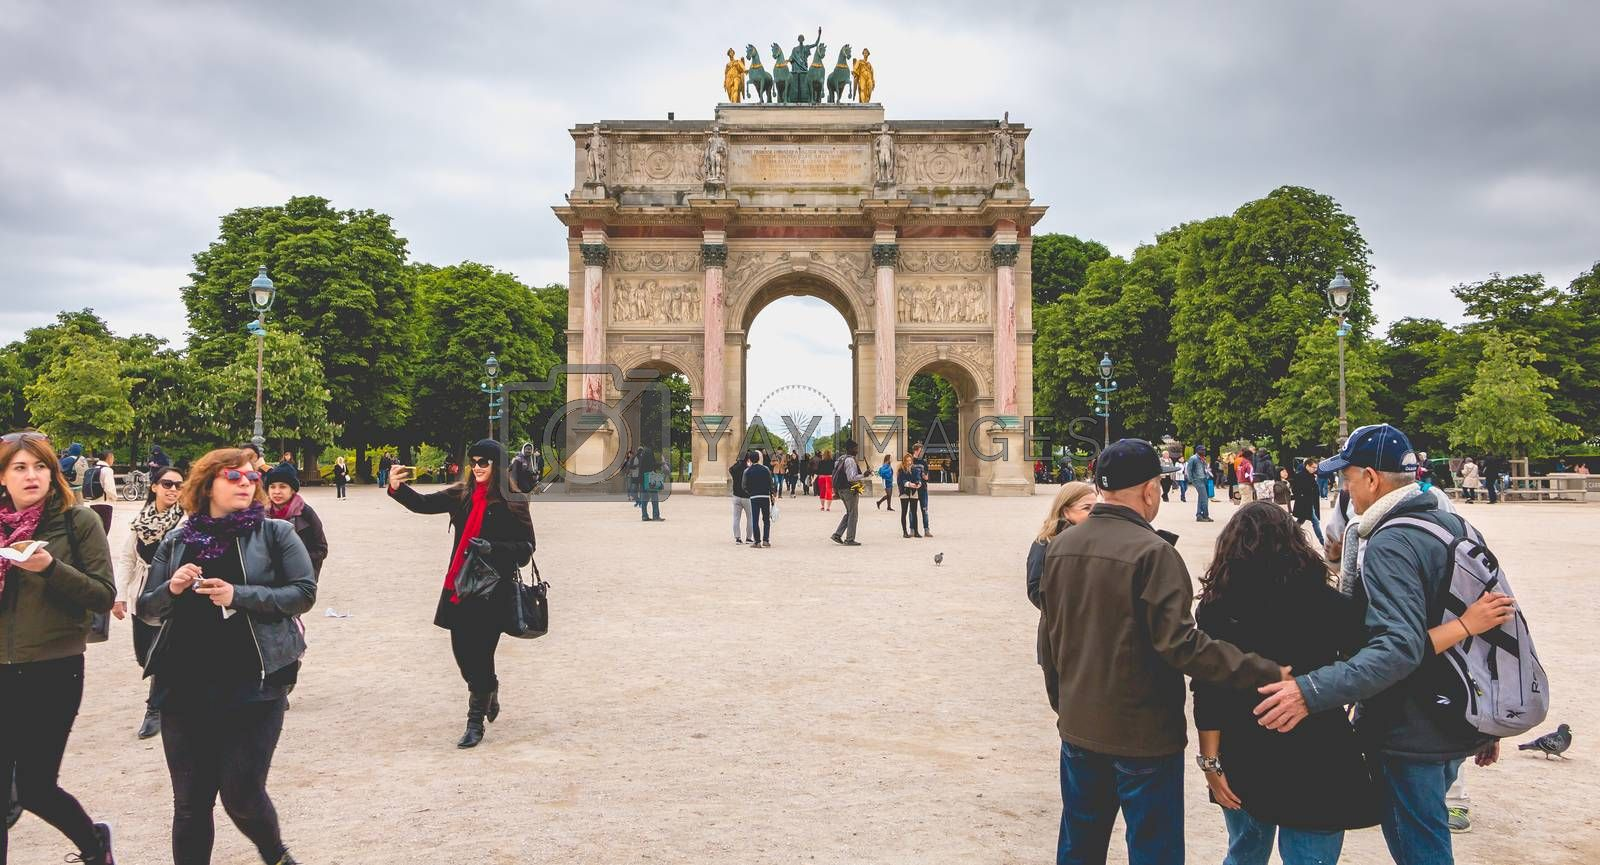 Paris, France - May 08, 2017 : In the garden of the tuileries, tourists walk before the triumphal arch of the carousel. The arch was built from 1806 to 1808 to commemorate the Napoleon's military victories